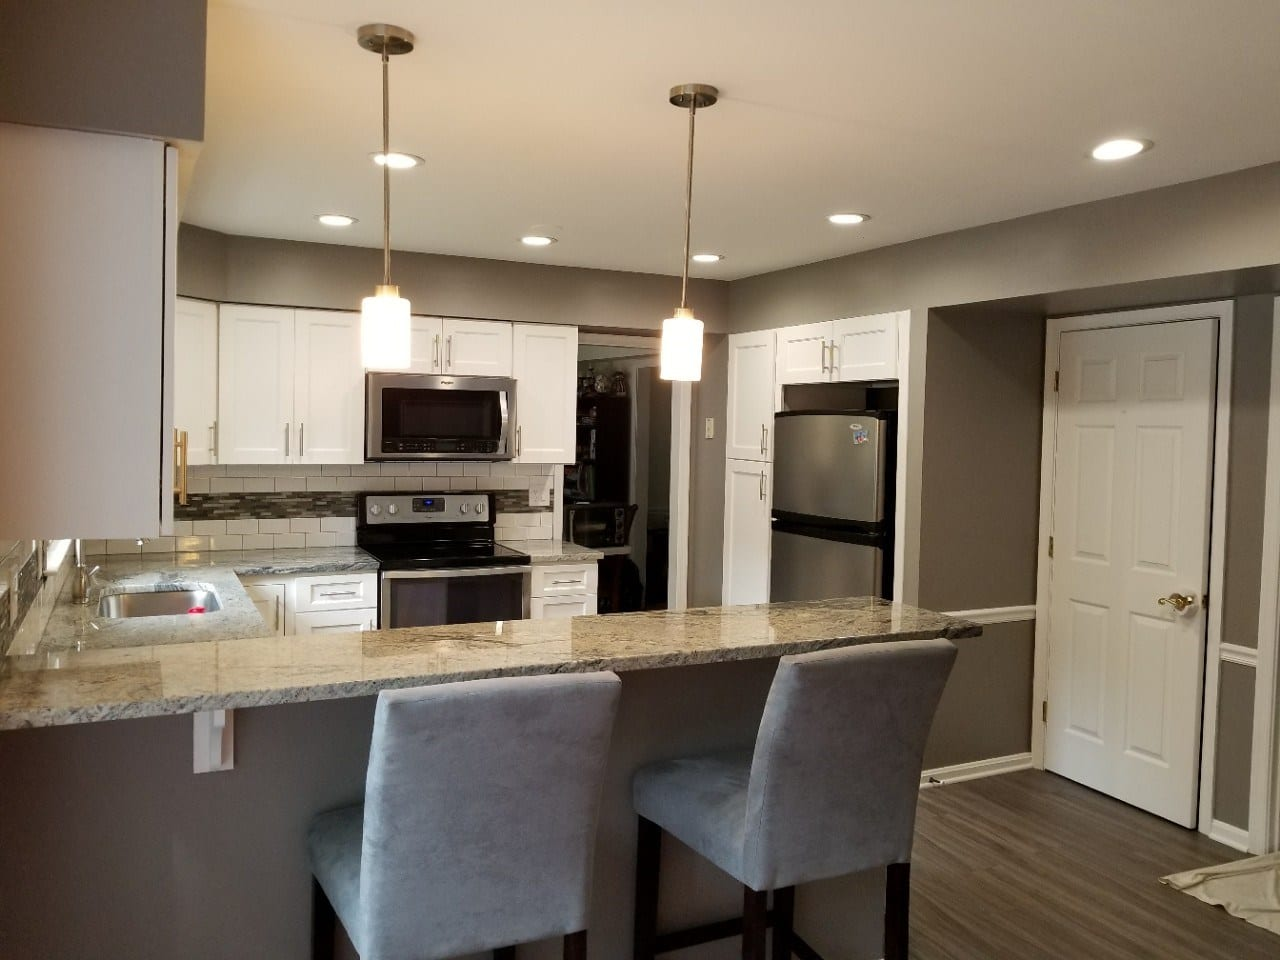 Low Cost Kitchen Remodeling Baltimore TradeMark Construction - What is the cost of a kitchen remodel